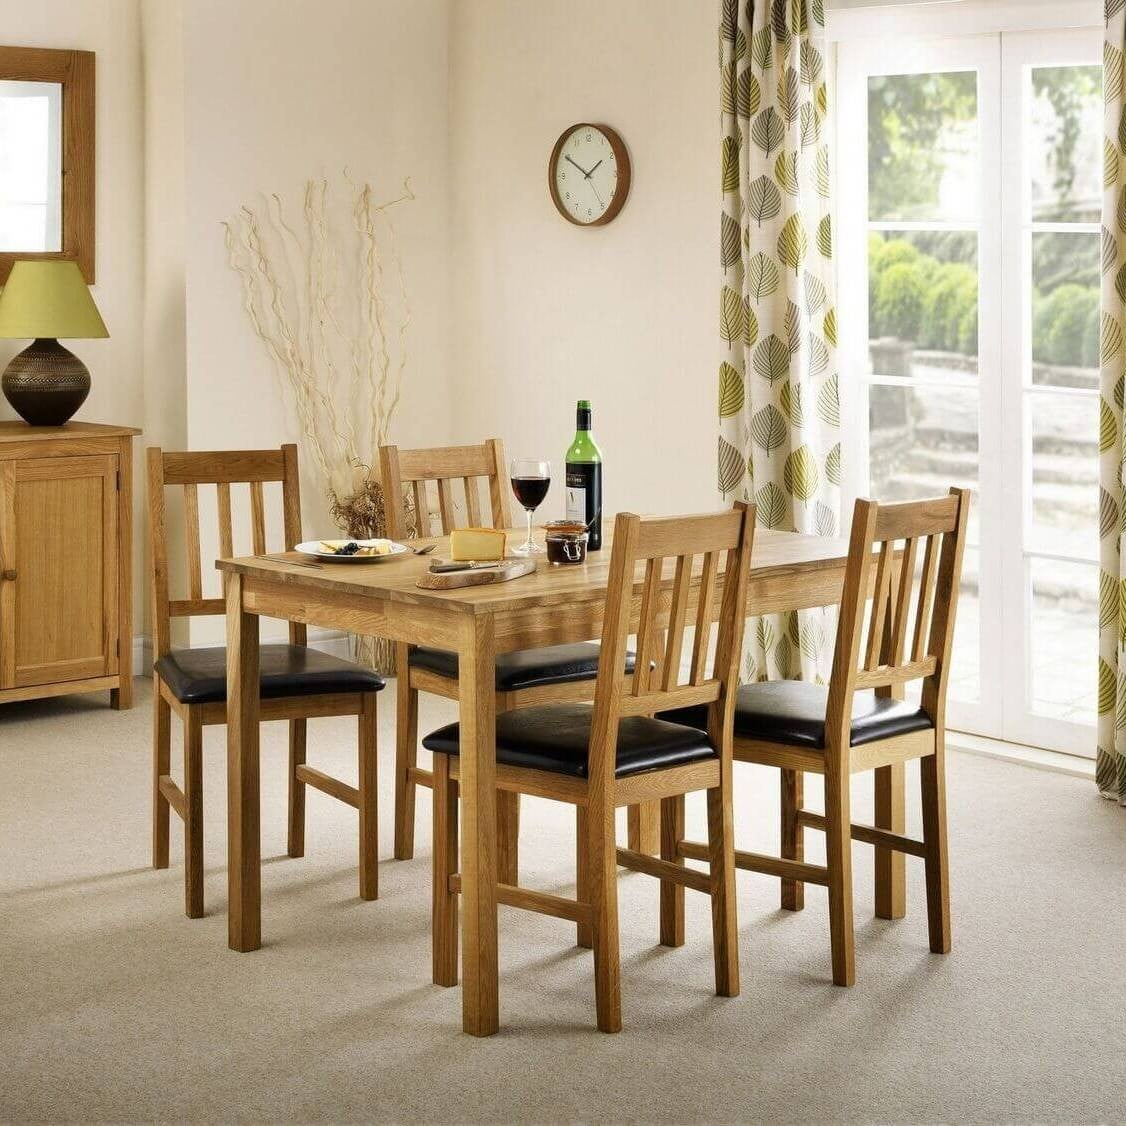 Meubles Furniture Ireland Treacy S Carpets And Furniture Online Shopping Of Home And Office